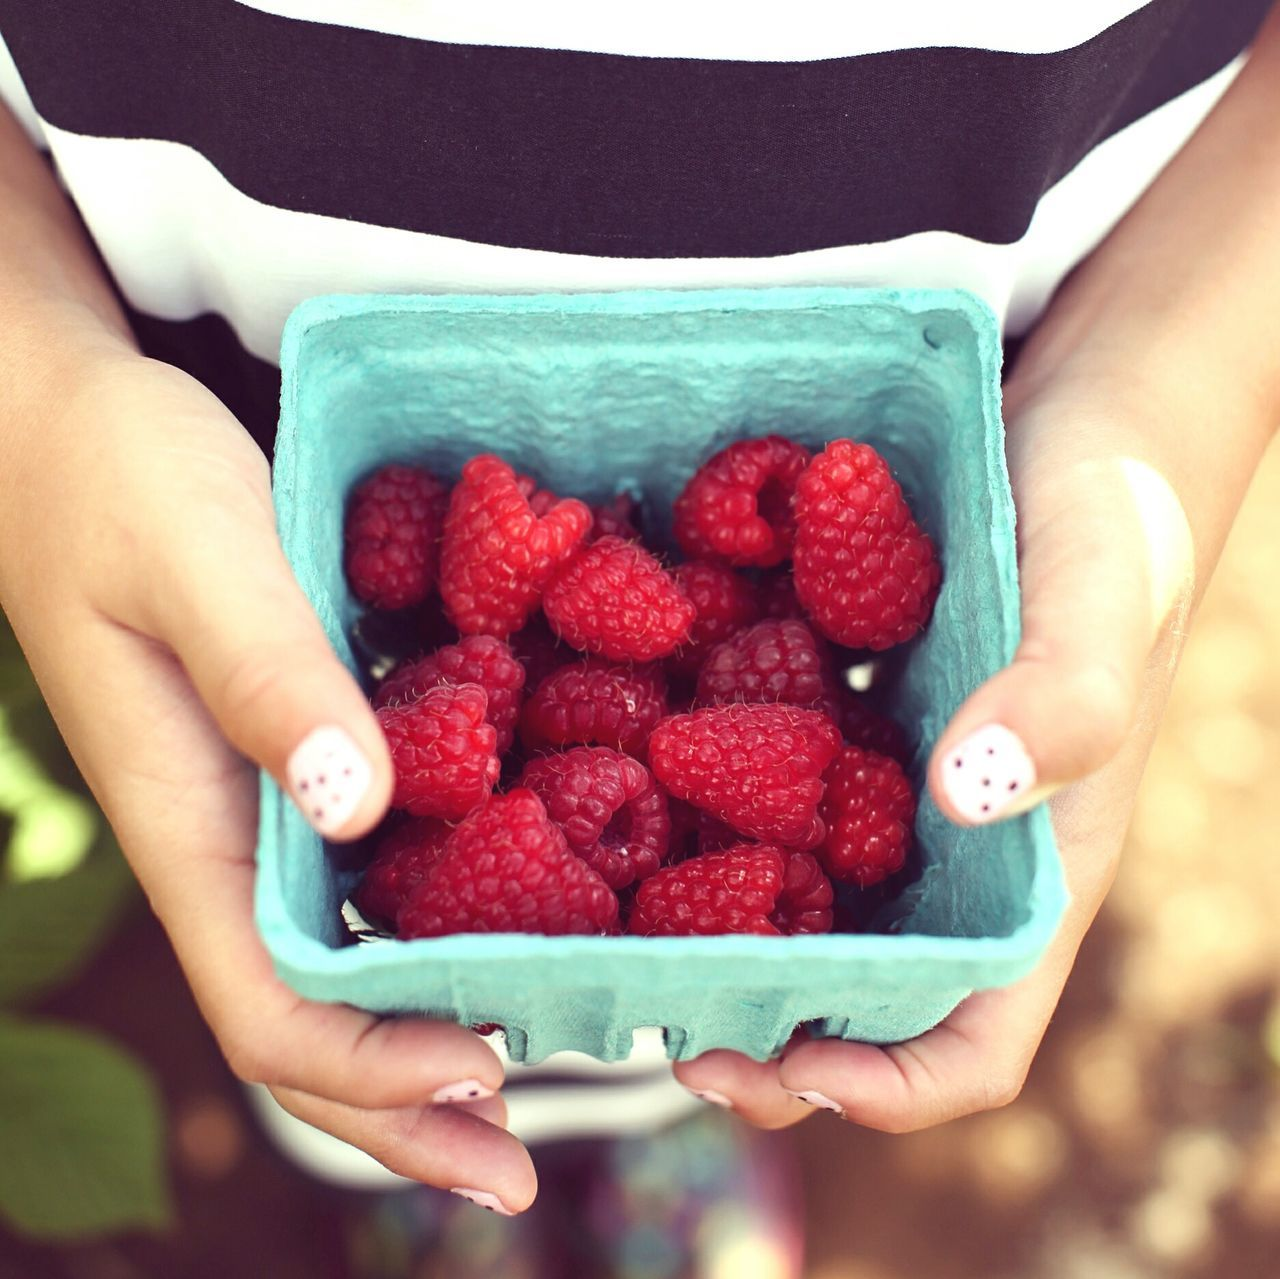 Midsection View Of Woman Holding Containers Of Strawberries